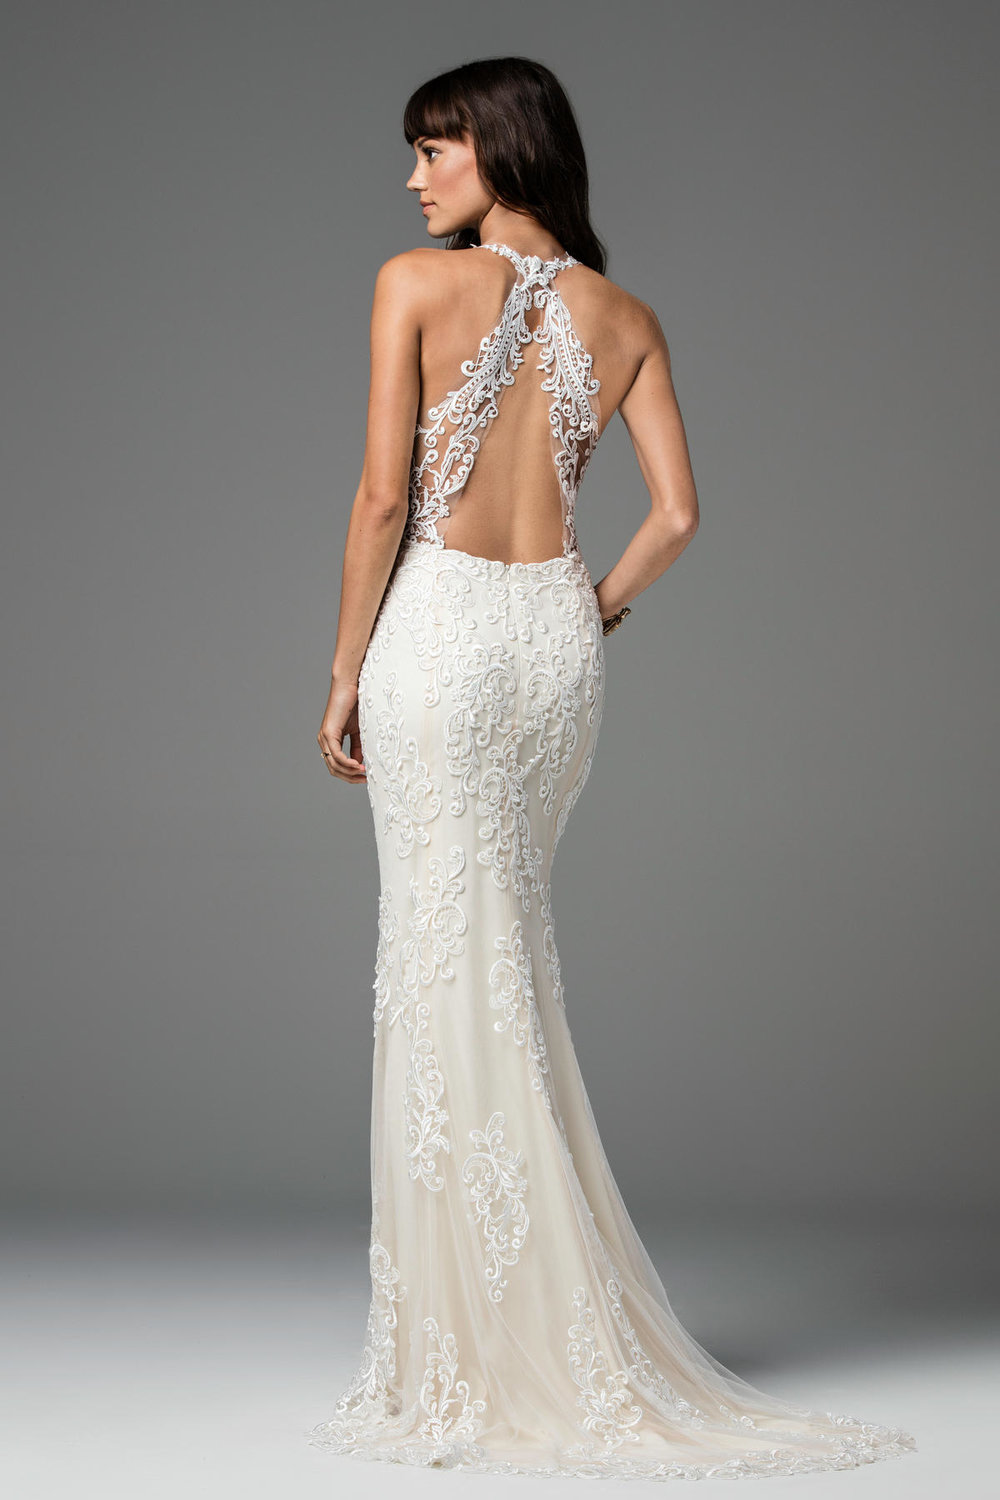 Willowby style 58702 (Sookie)